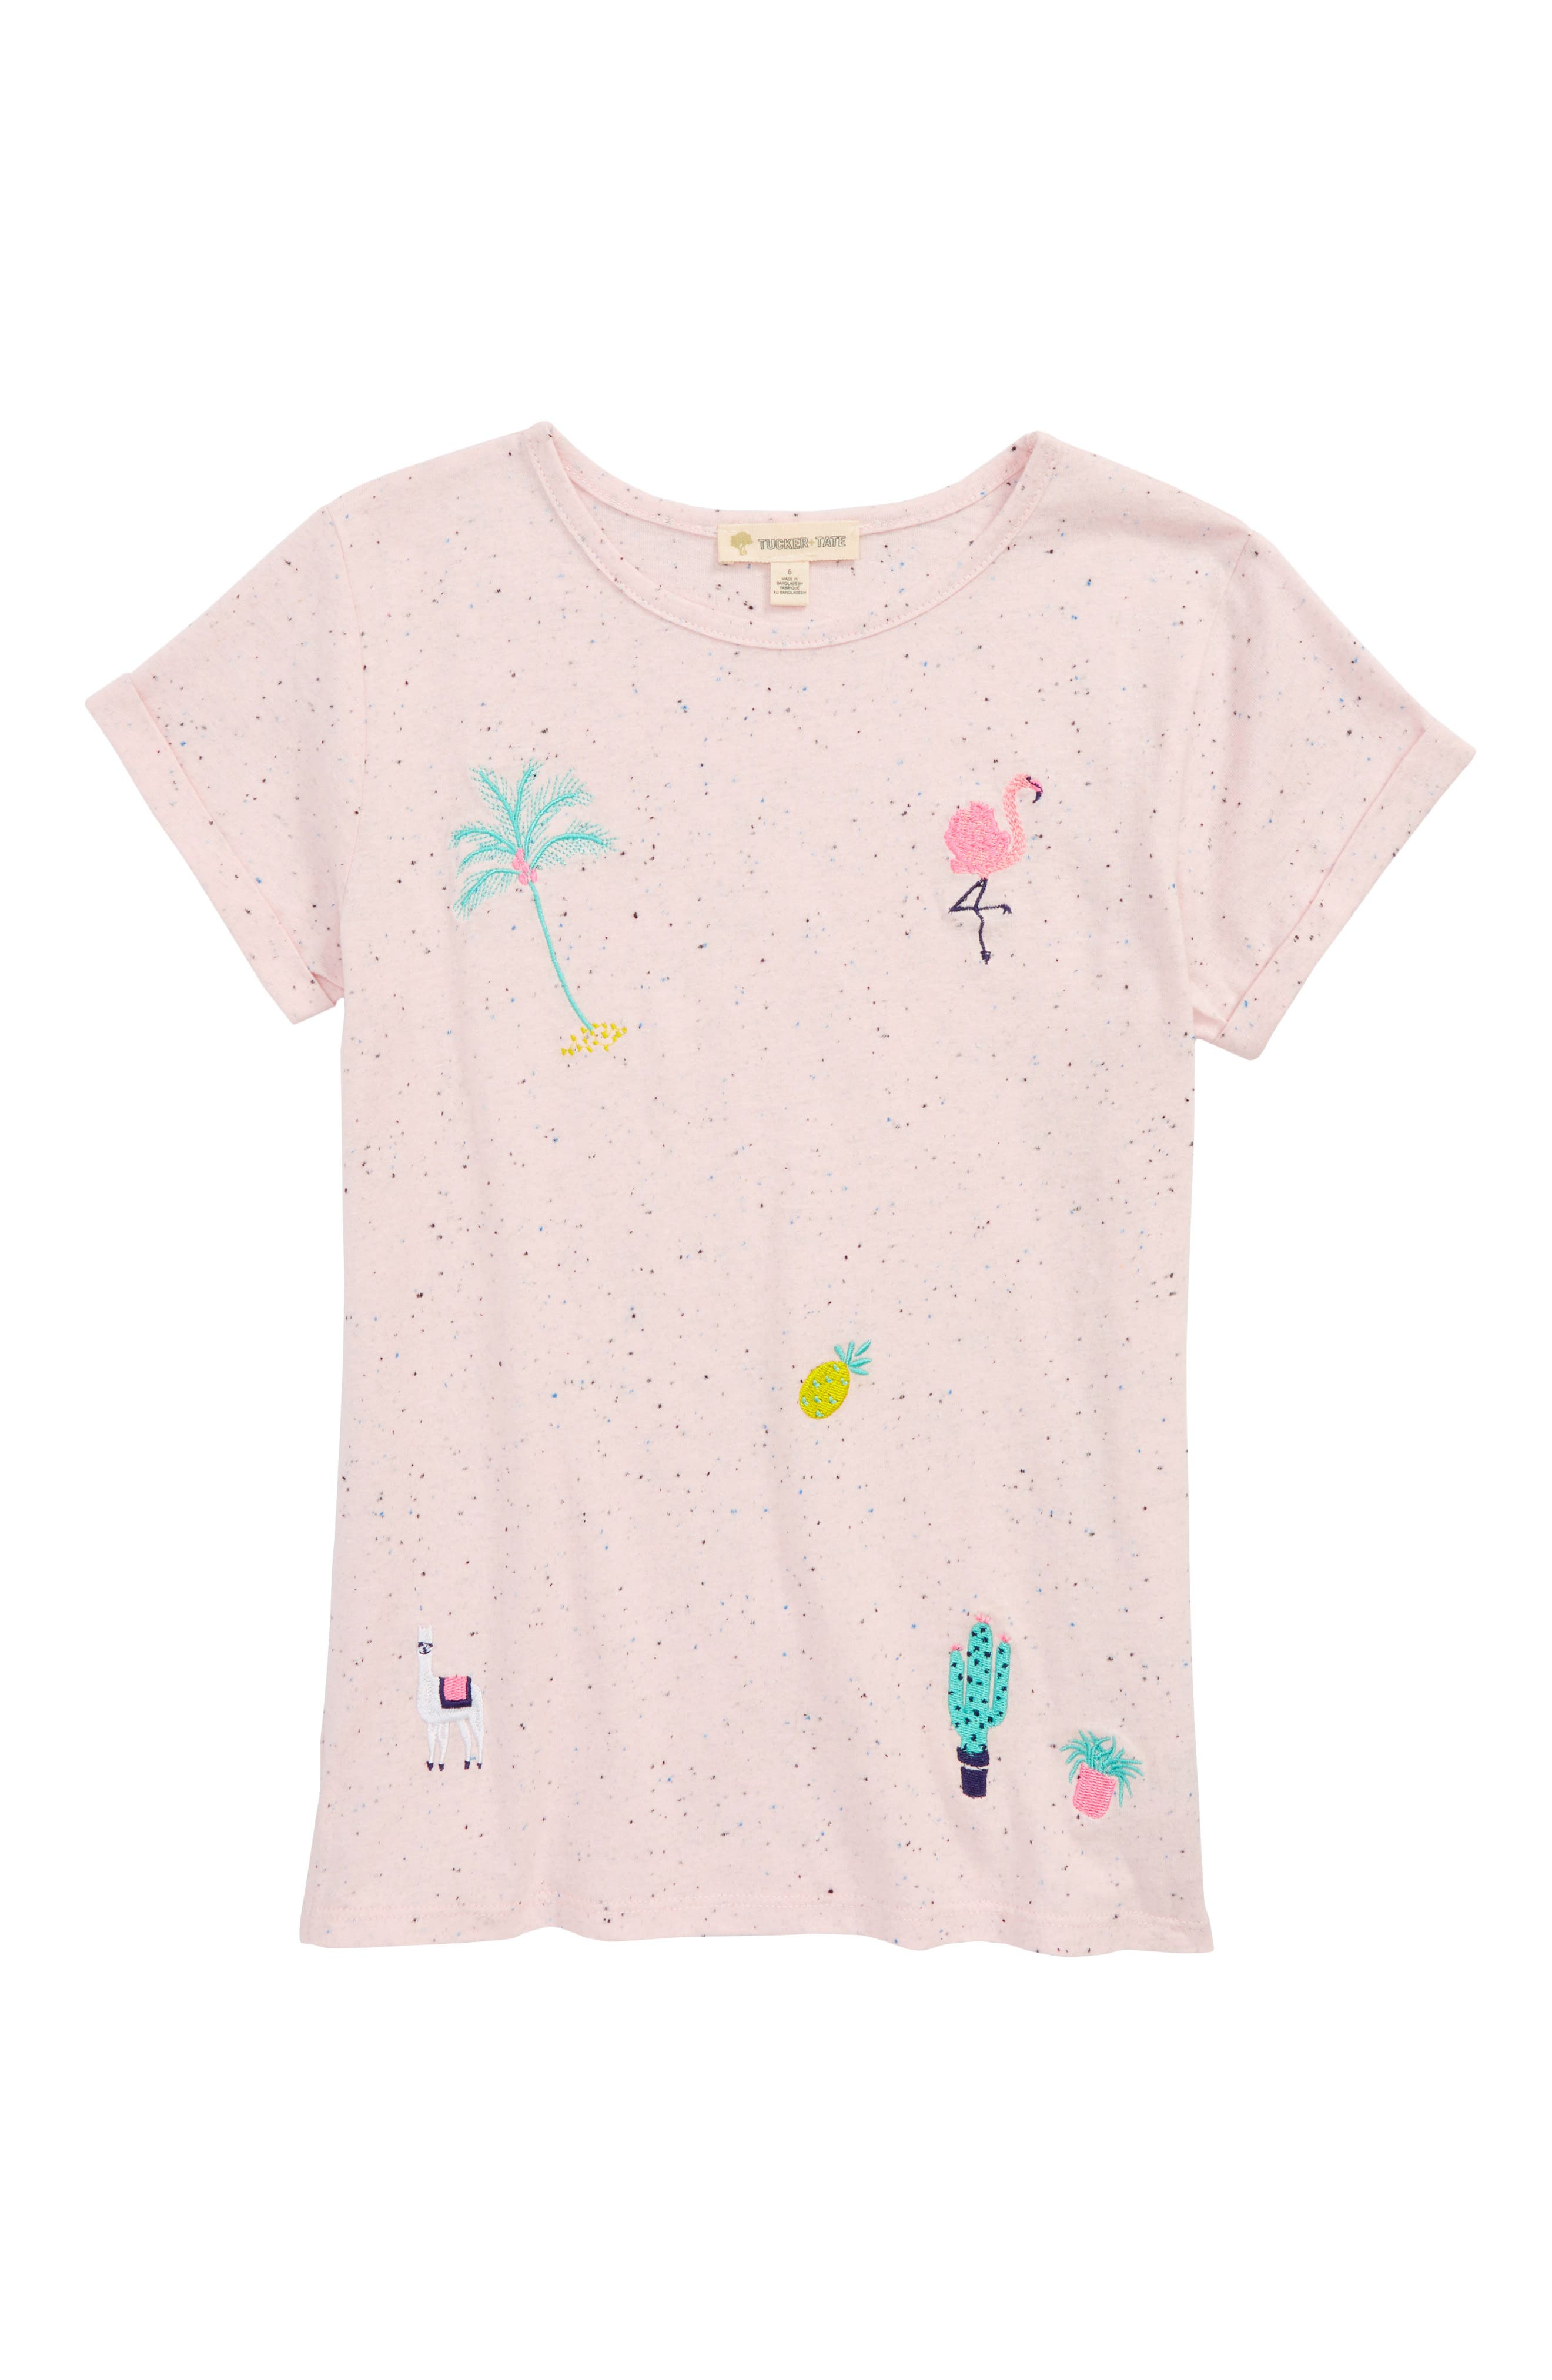 Embroidered Tee,                             Main thumbnail 1, color,                             Pink Breath Tropical